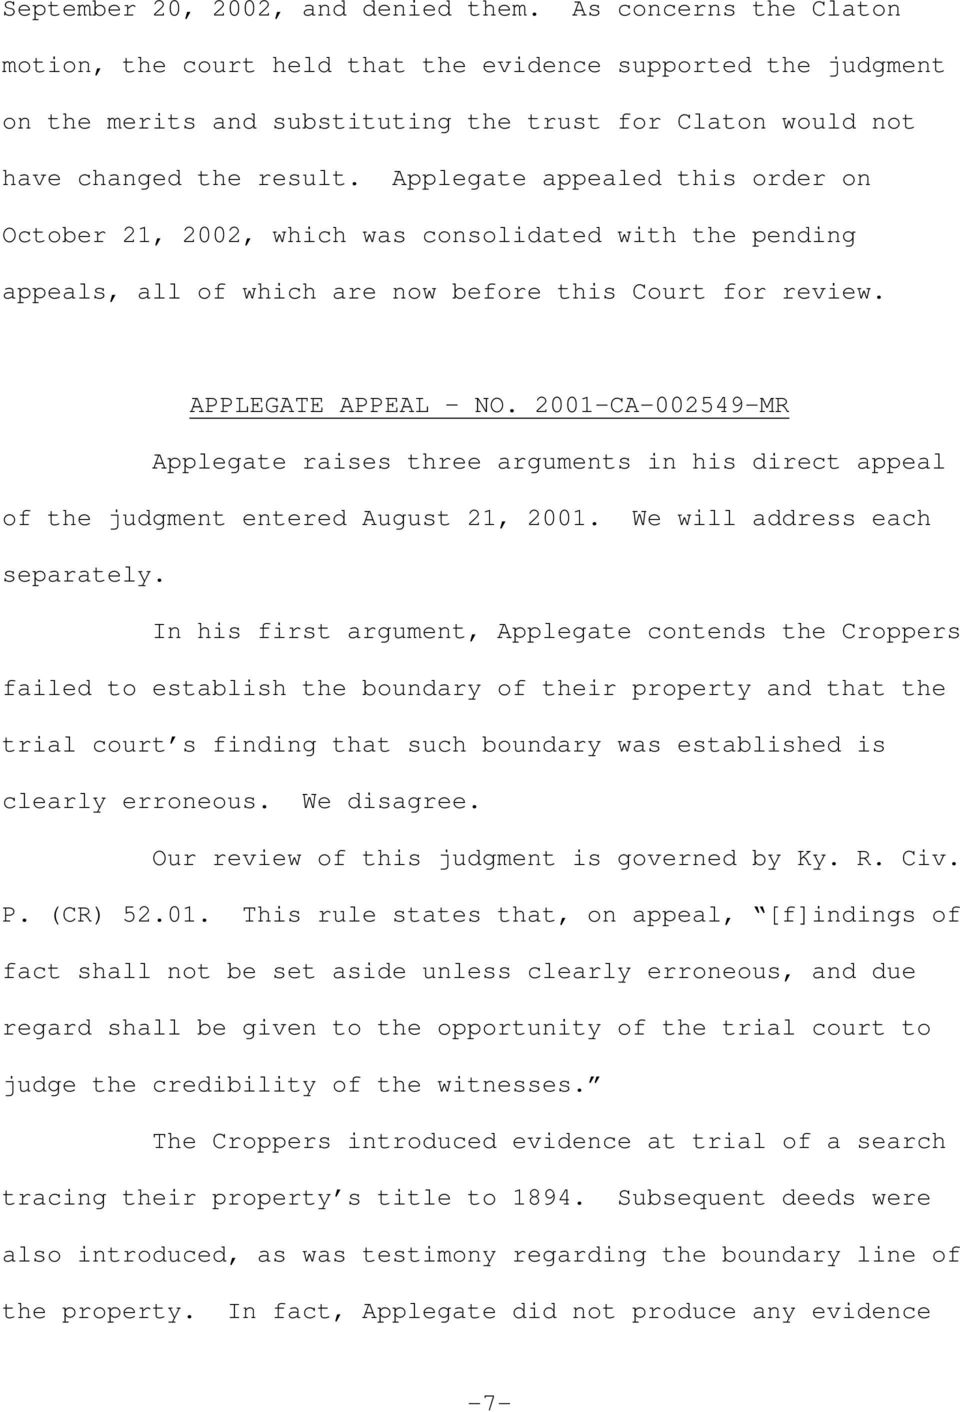 Applegate appealed this order on October 21, 2002, which was consolidated with the pending appeals, all of which are now before this Court for review. APPLEGATE APPEAL NO.